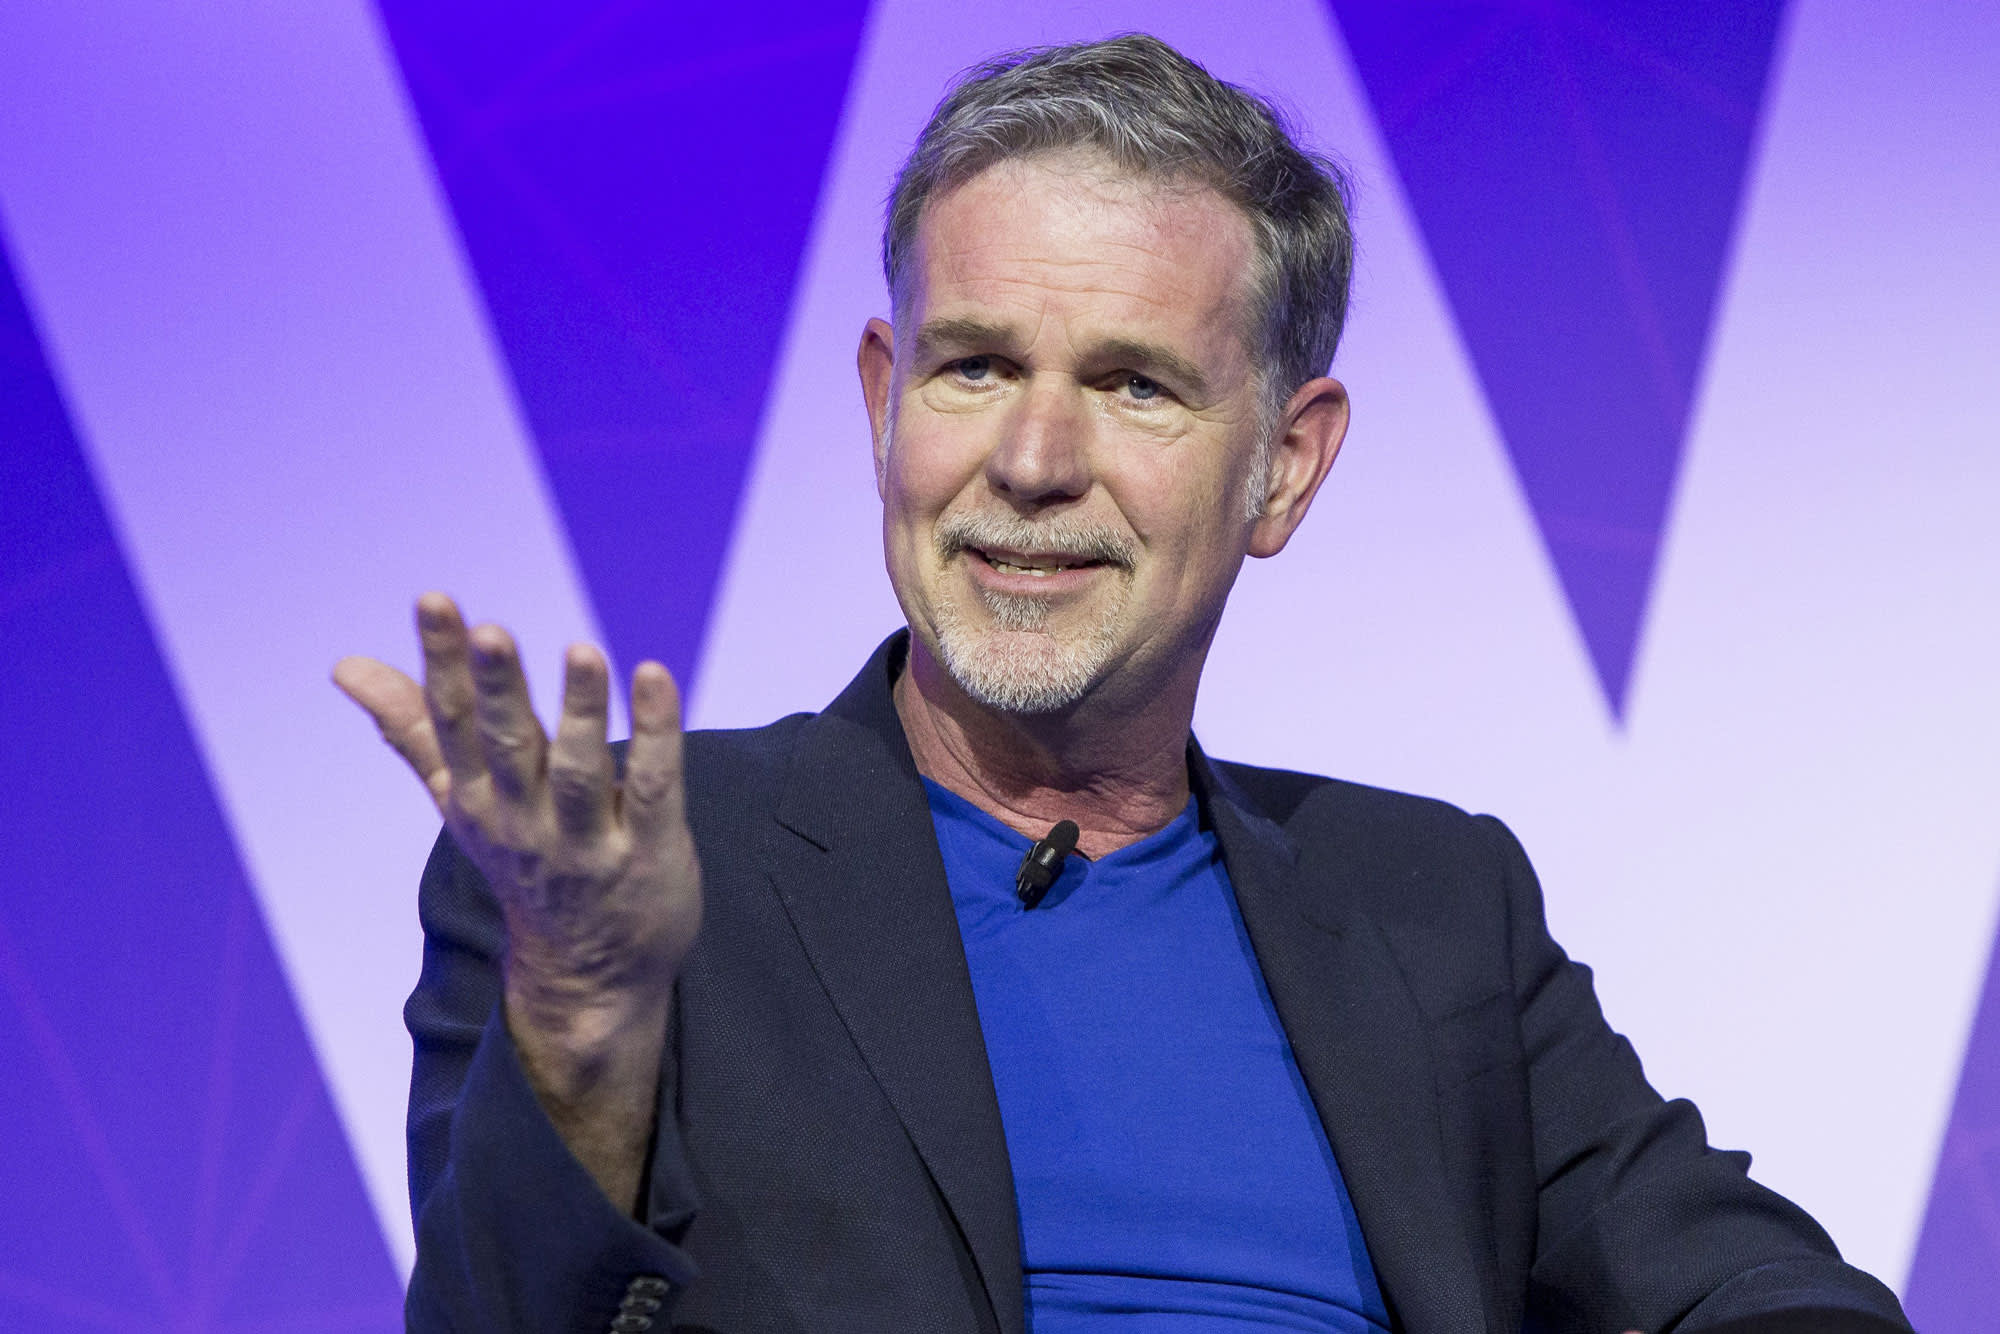 Netflix to competition: Welcome! Your success will be our success